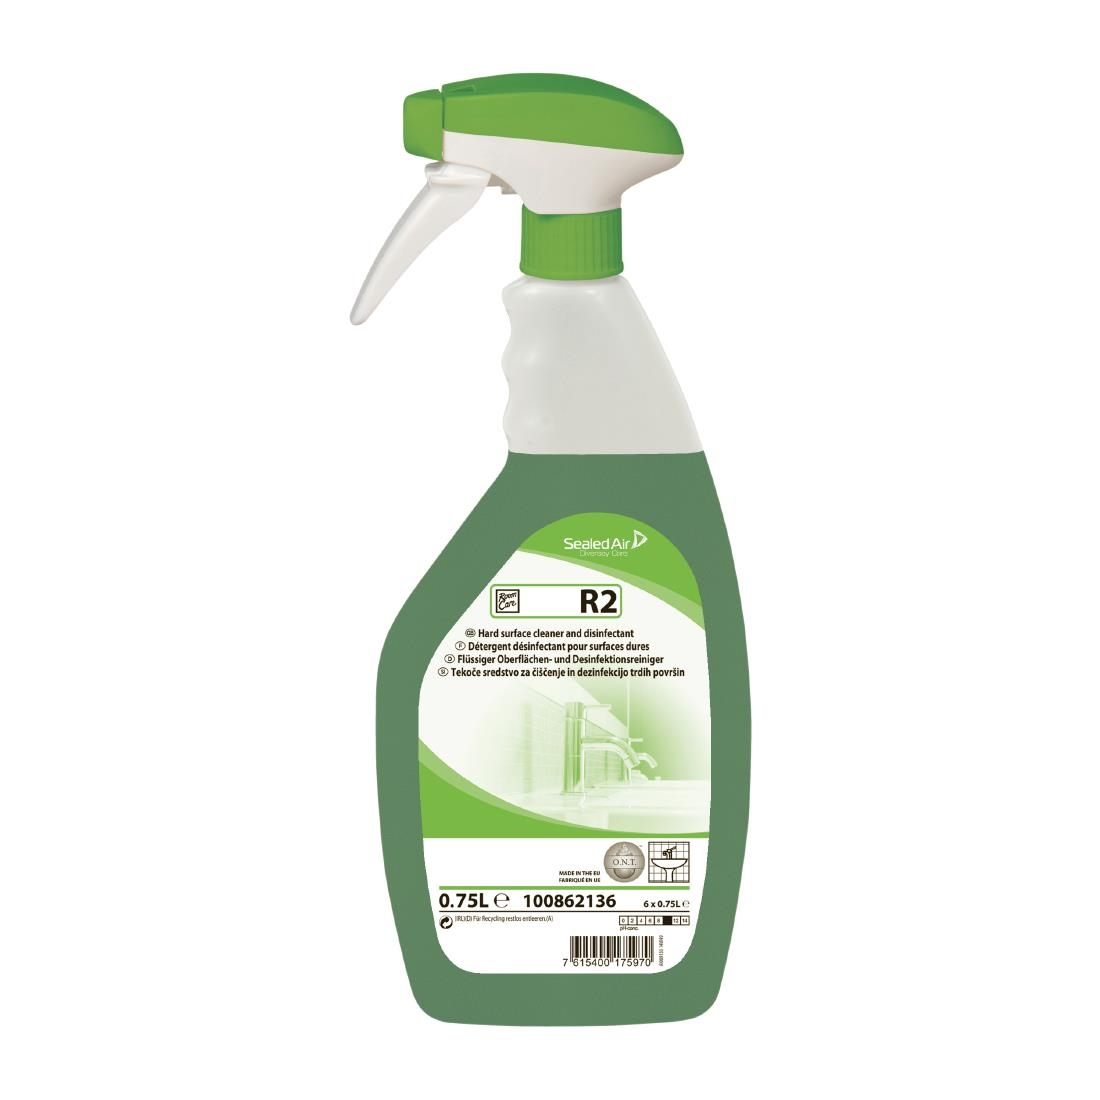 Image of Room Care R2 Hard Surface Cleaner and Disinfectant Ready To Use 750ml (6 Pack) Pack of 6